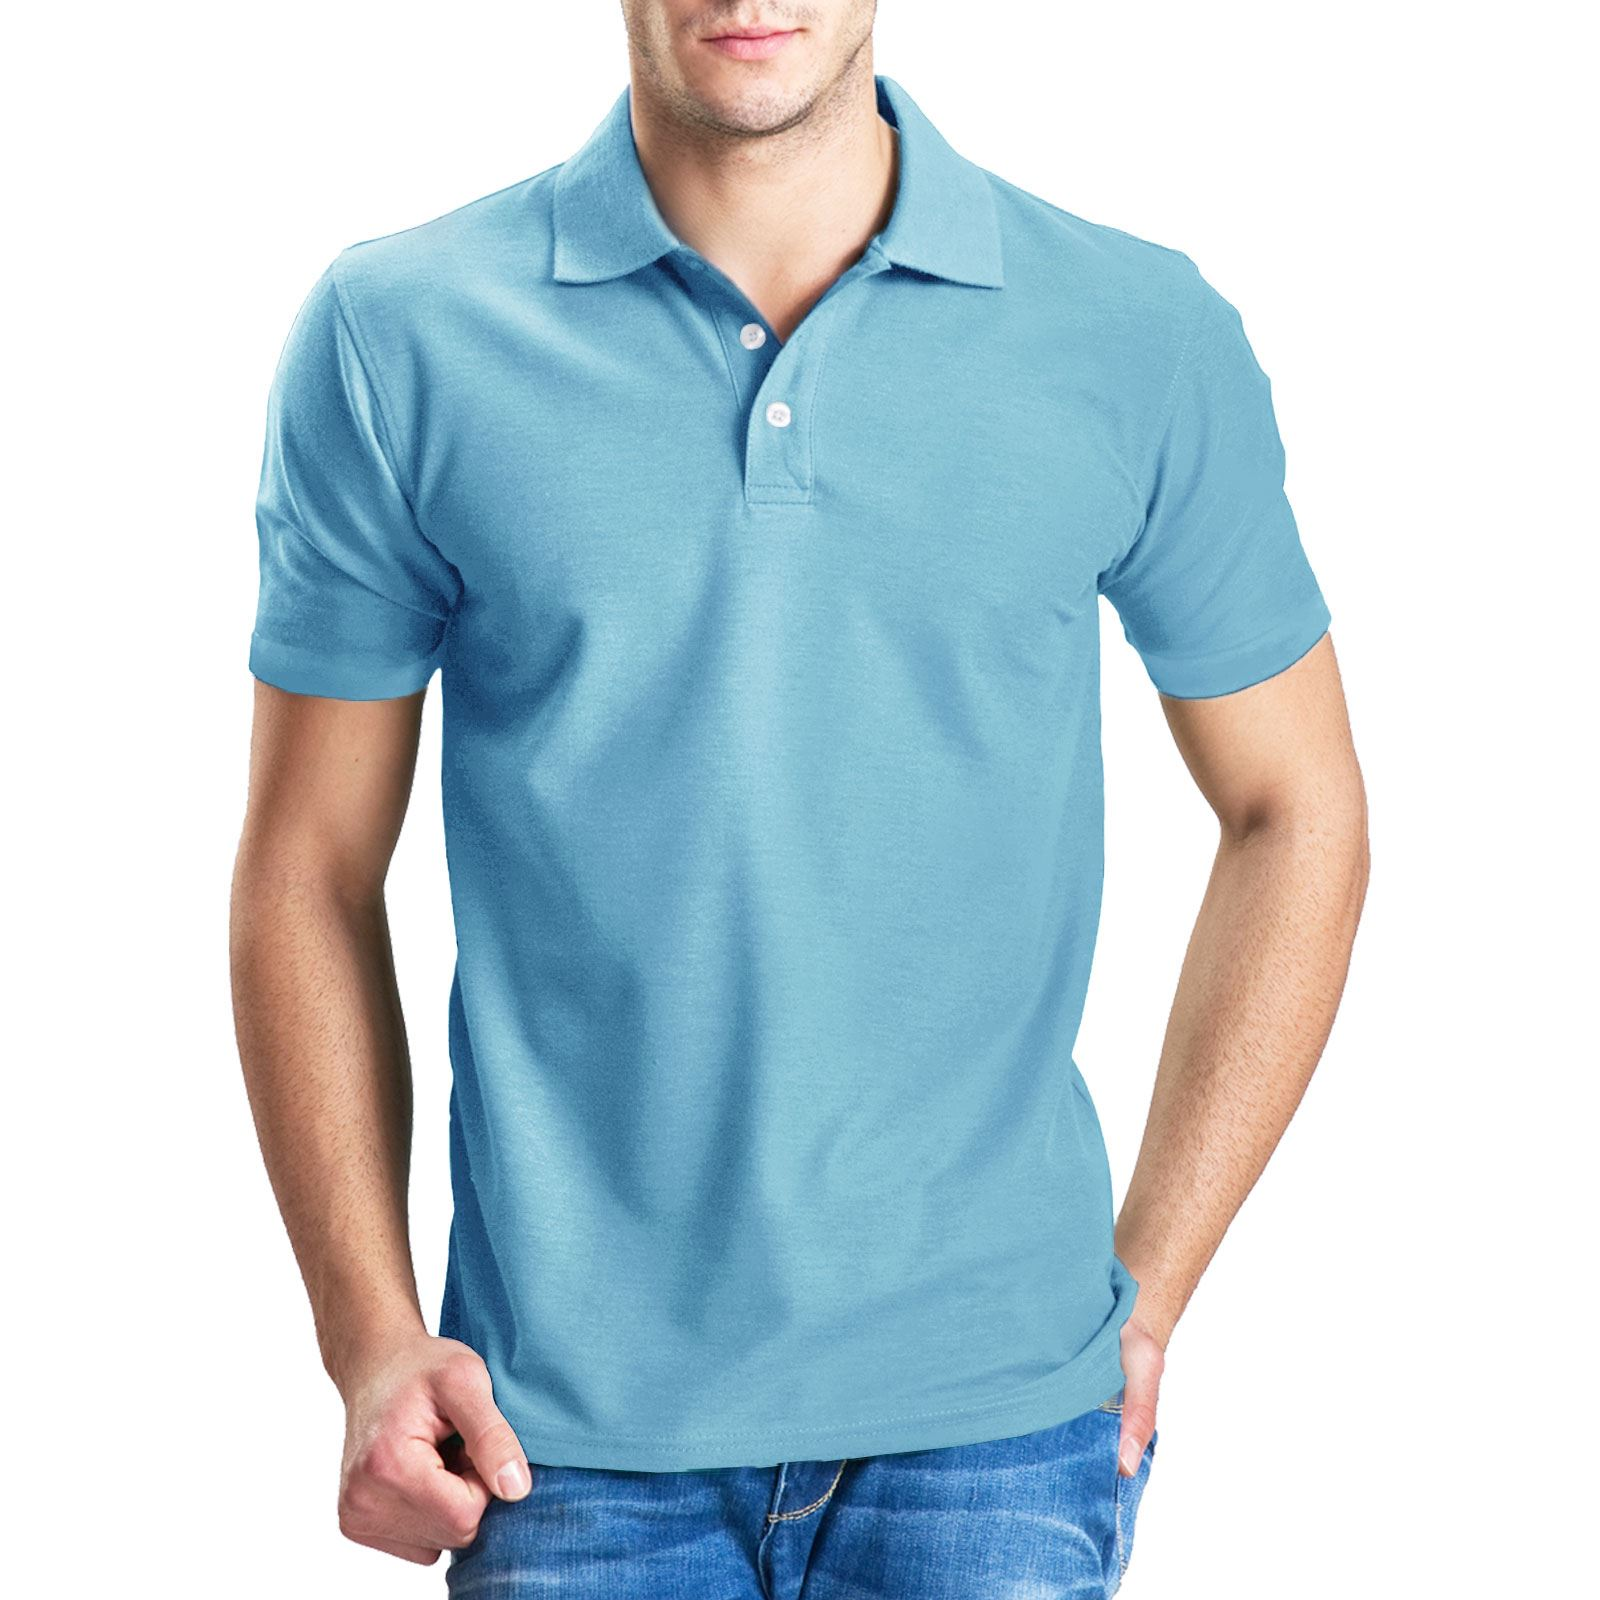 Mens plain poly cotton pique polo t shirt ribbed collar for Mens ribbed t shirts